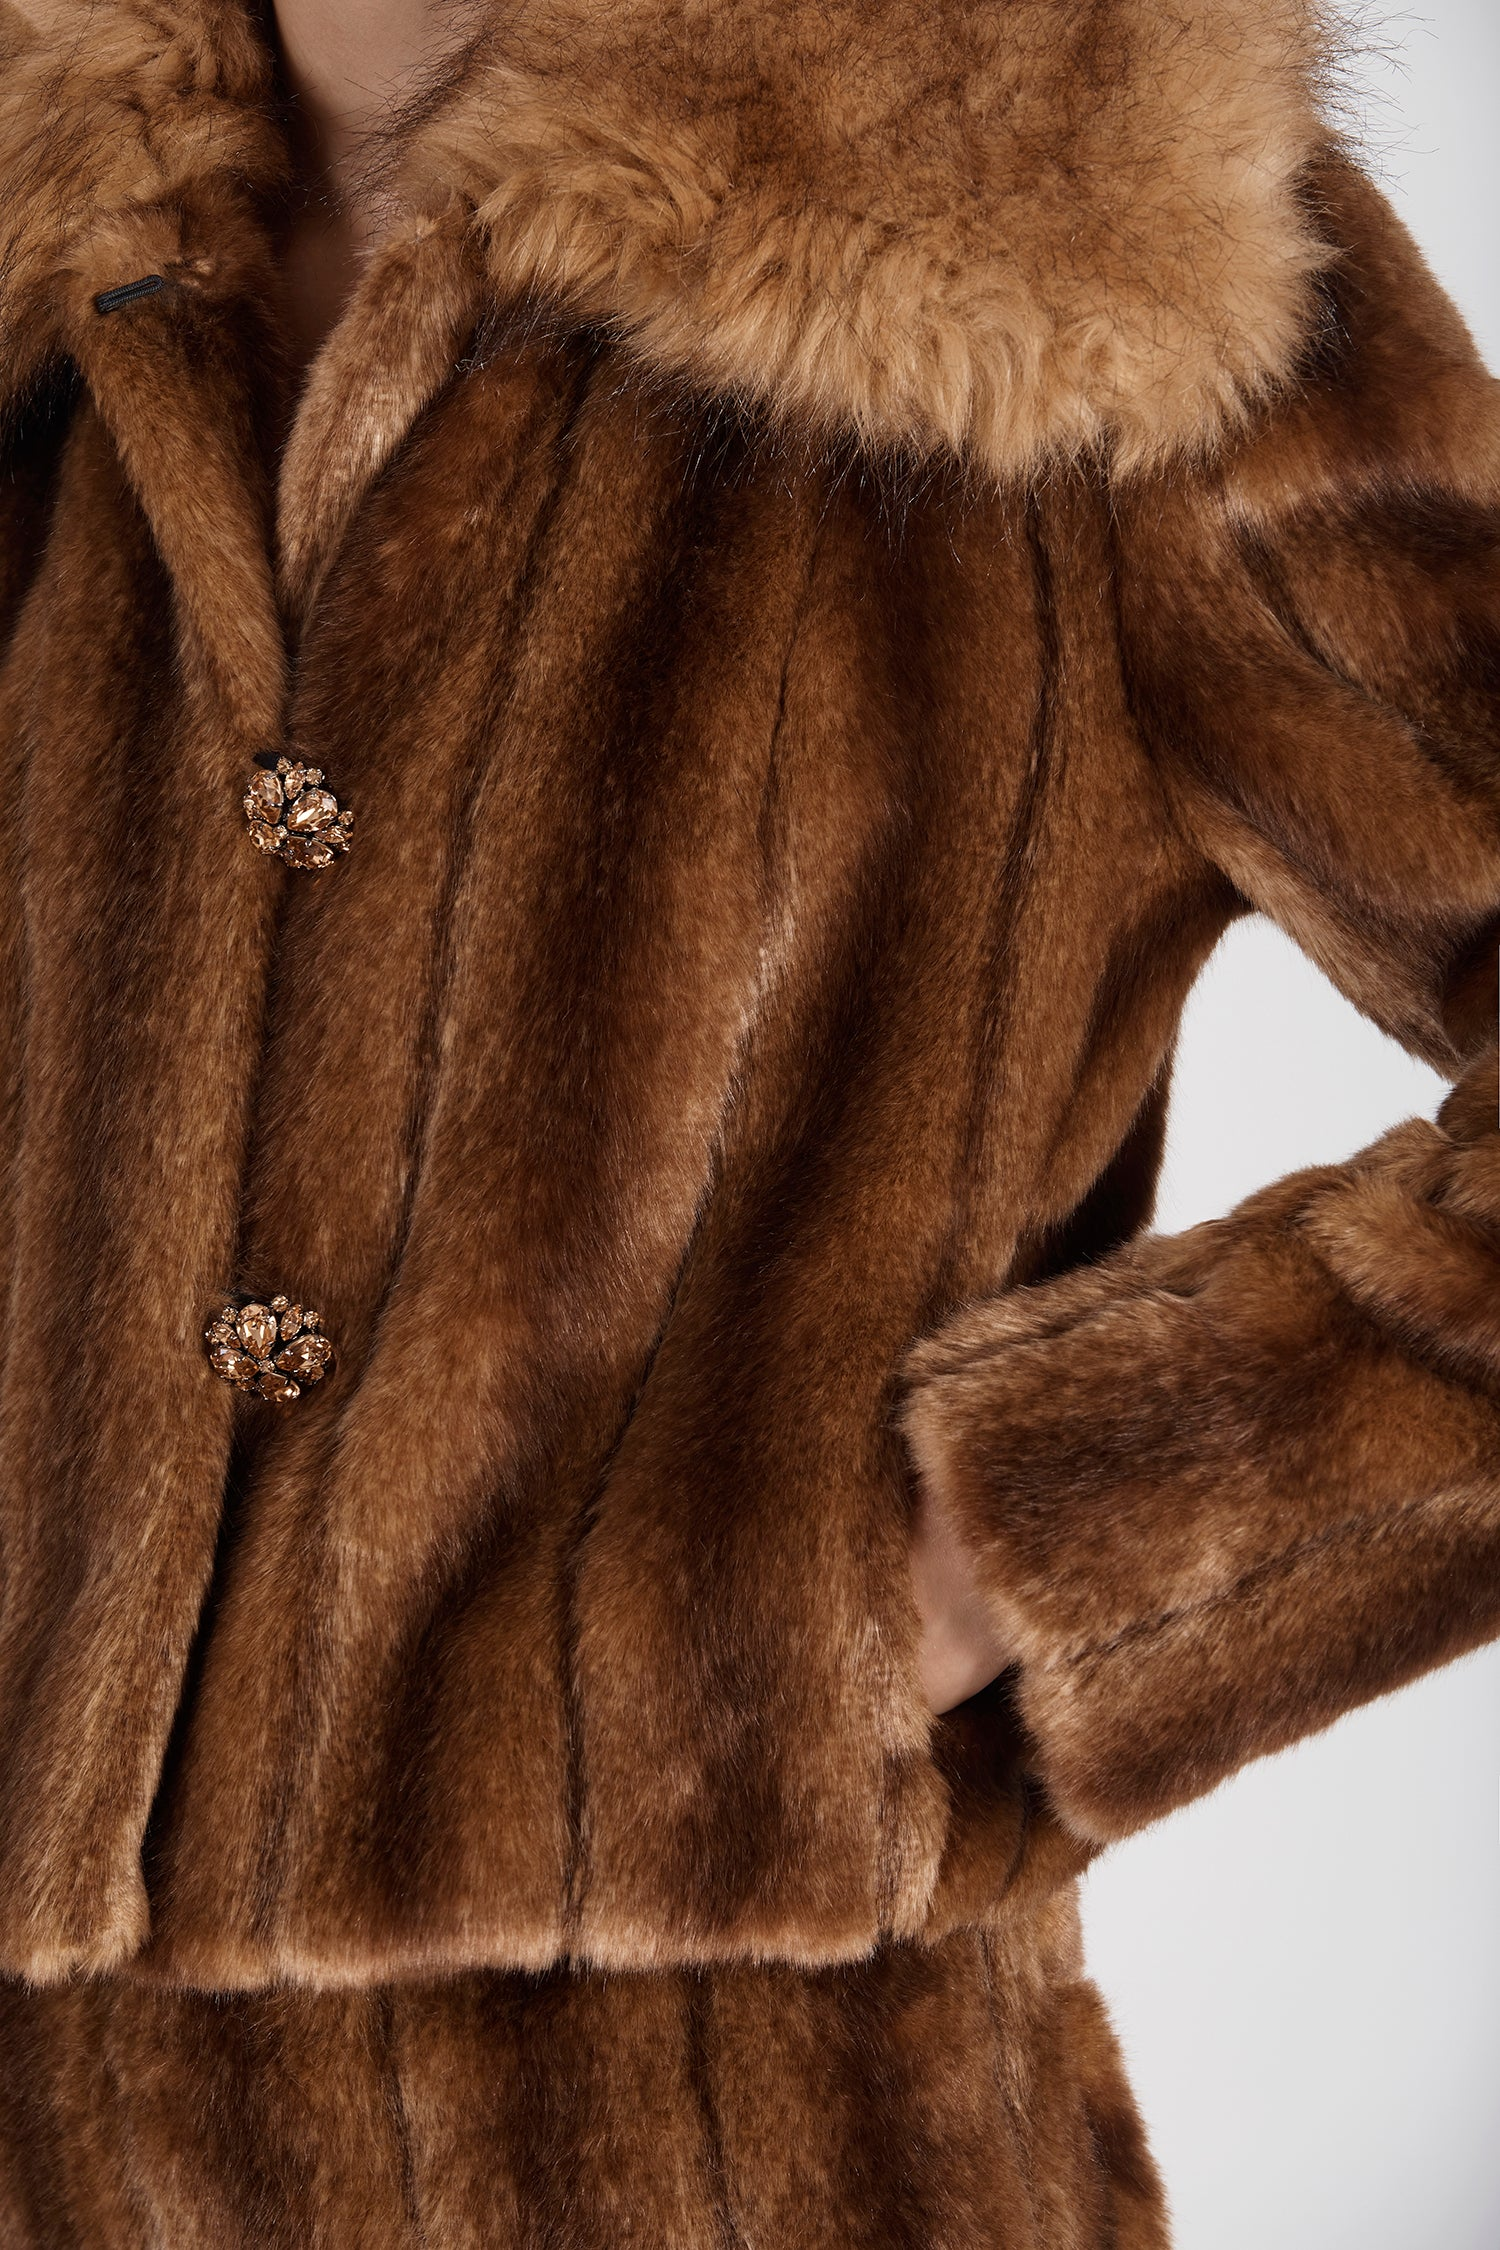 Marei1998's Oleander Faux Fur Short Jacket In Classic Brown Color. Featuring Wide Collar And Unique Front Buttons Made By An Italian Jewel Artisan. As Worn By The Model. Close Up View on The Front. Resort 2020 Collection - Furless Friendship.